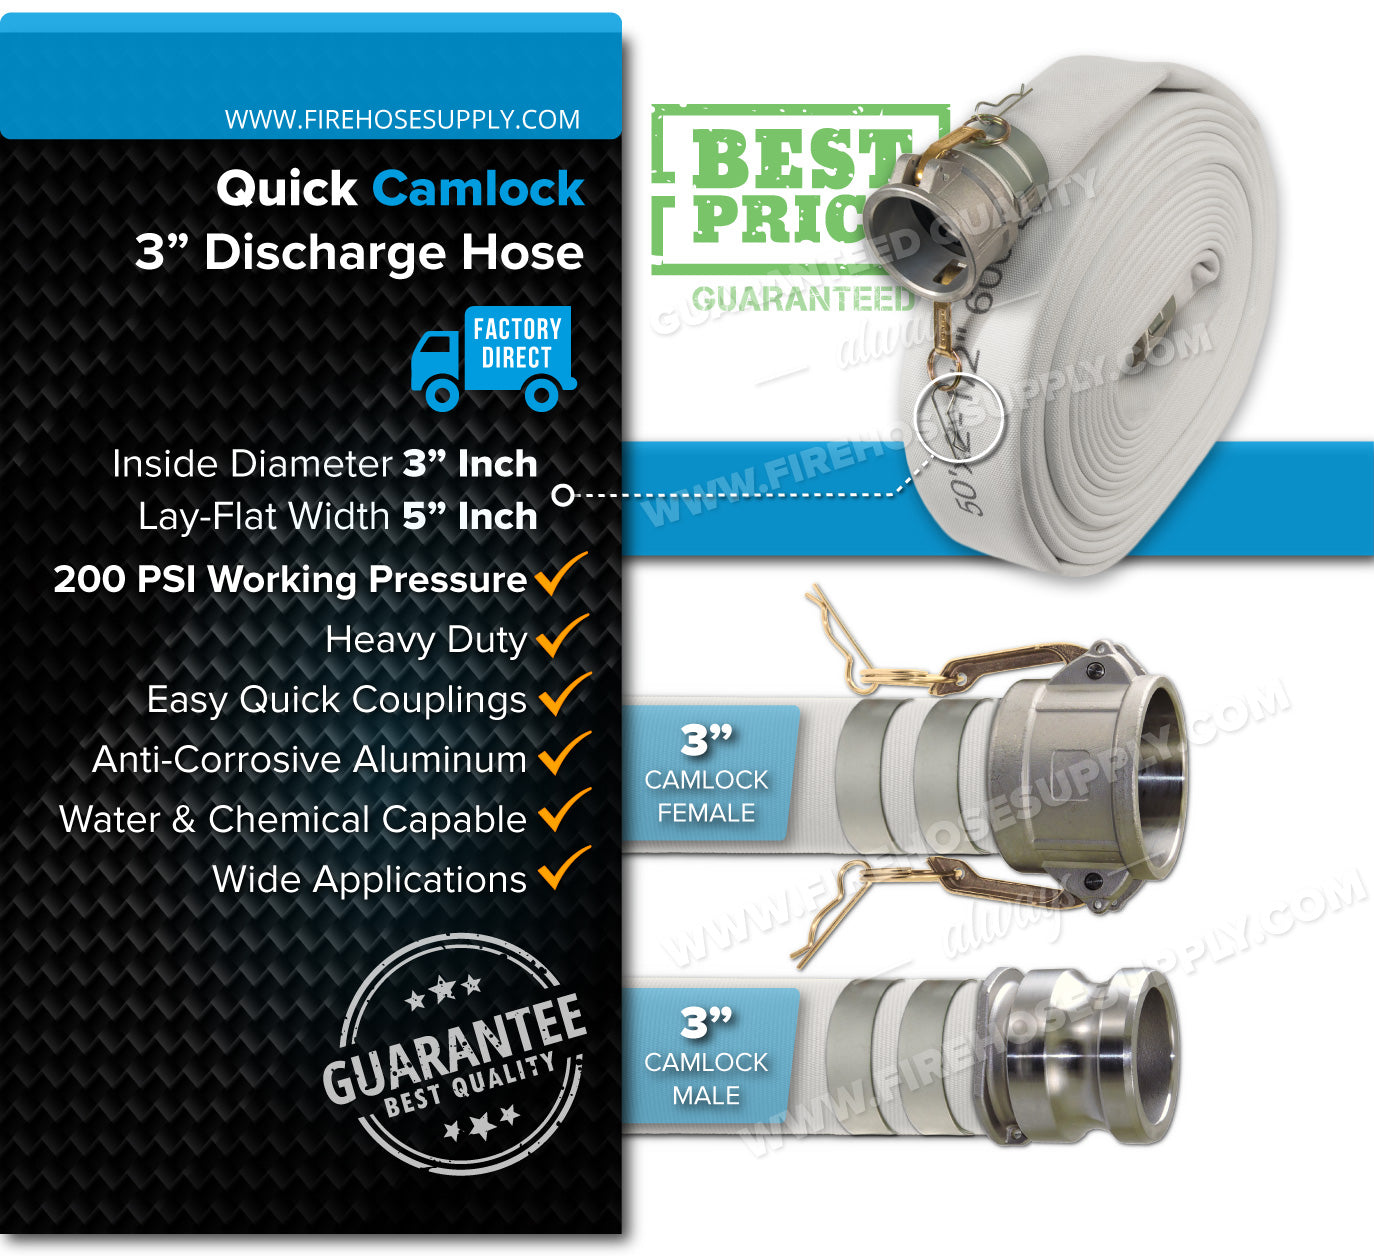 3 Inch Double Jacket Camlock Hose Overview